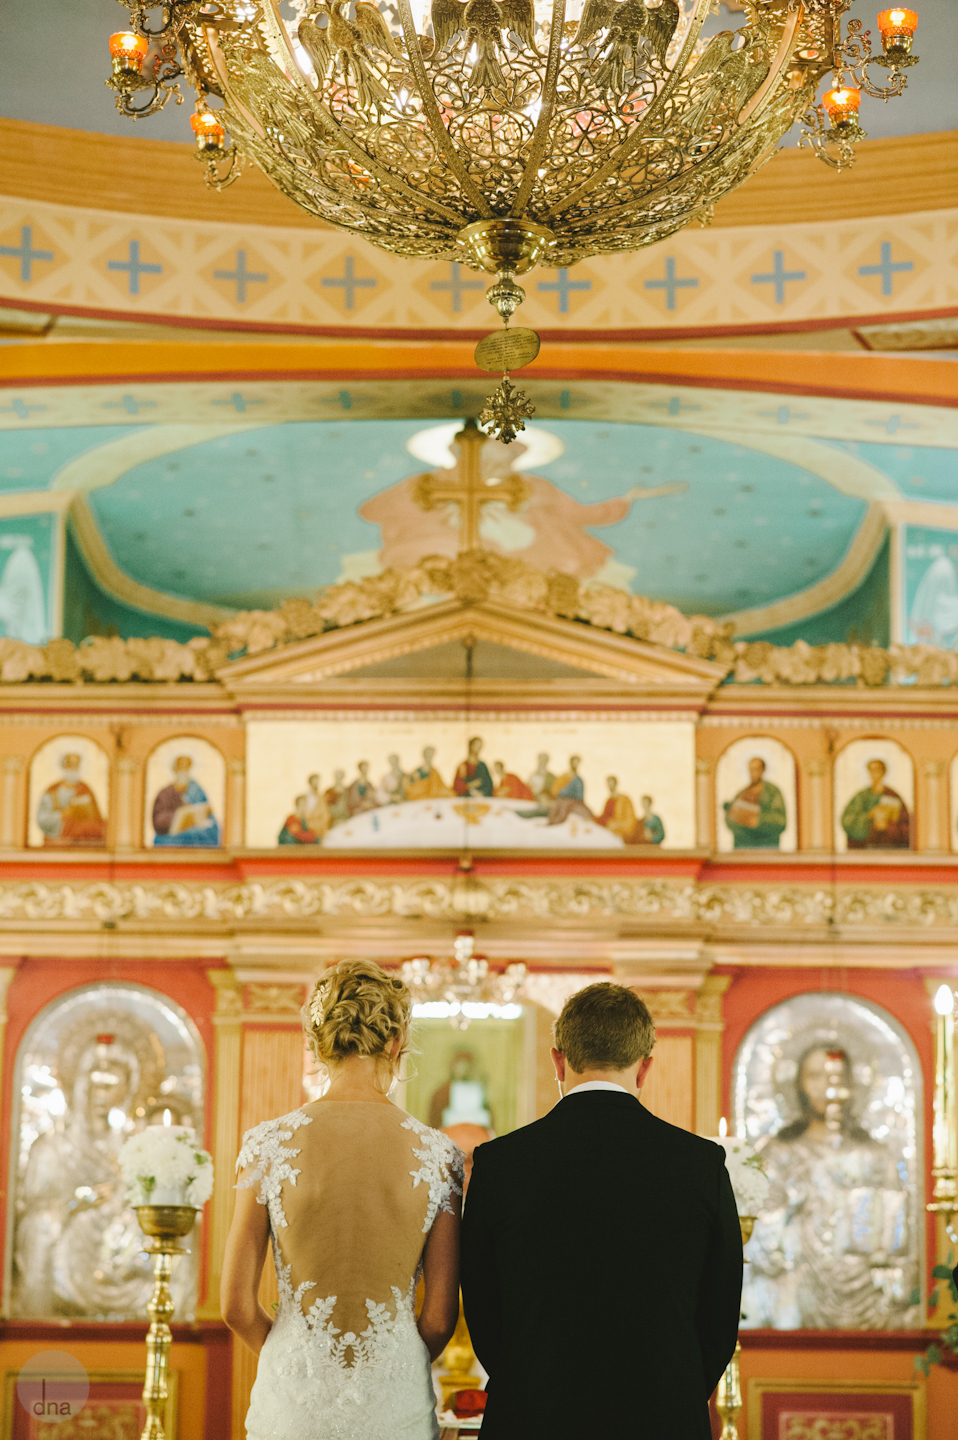 ceremony Chrisli and Matt wedding Greek Orthodox Church Woodstock Cape Town South Africa shot by dna photographers 194.jpg